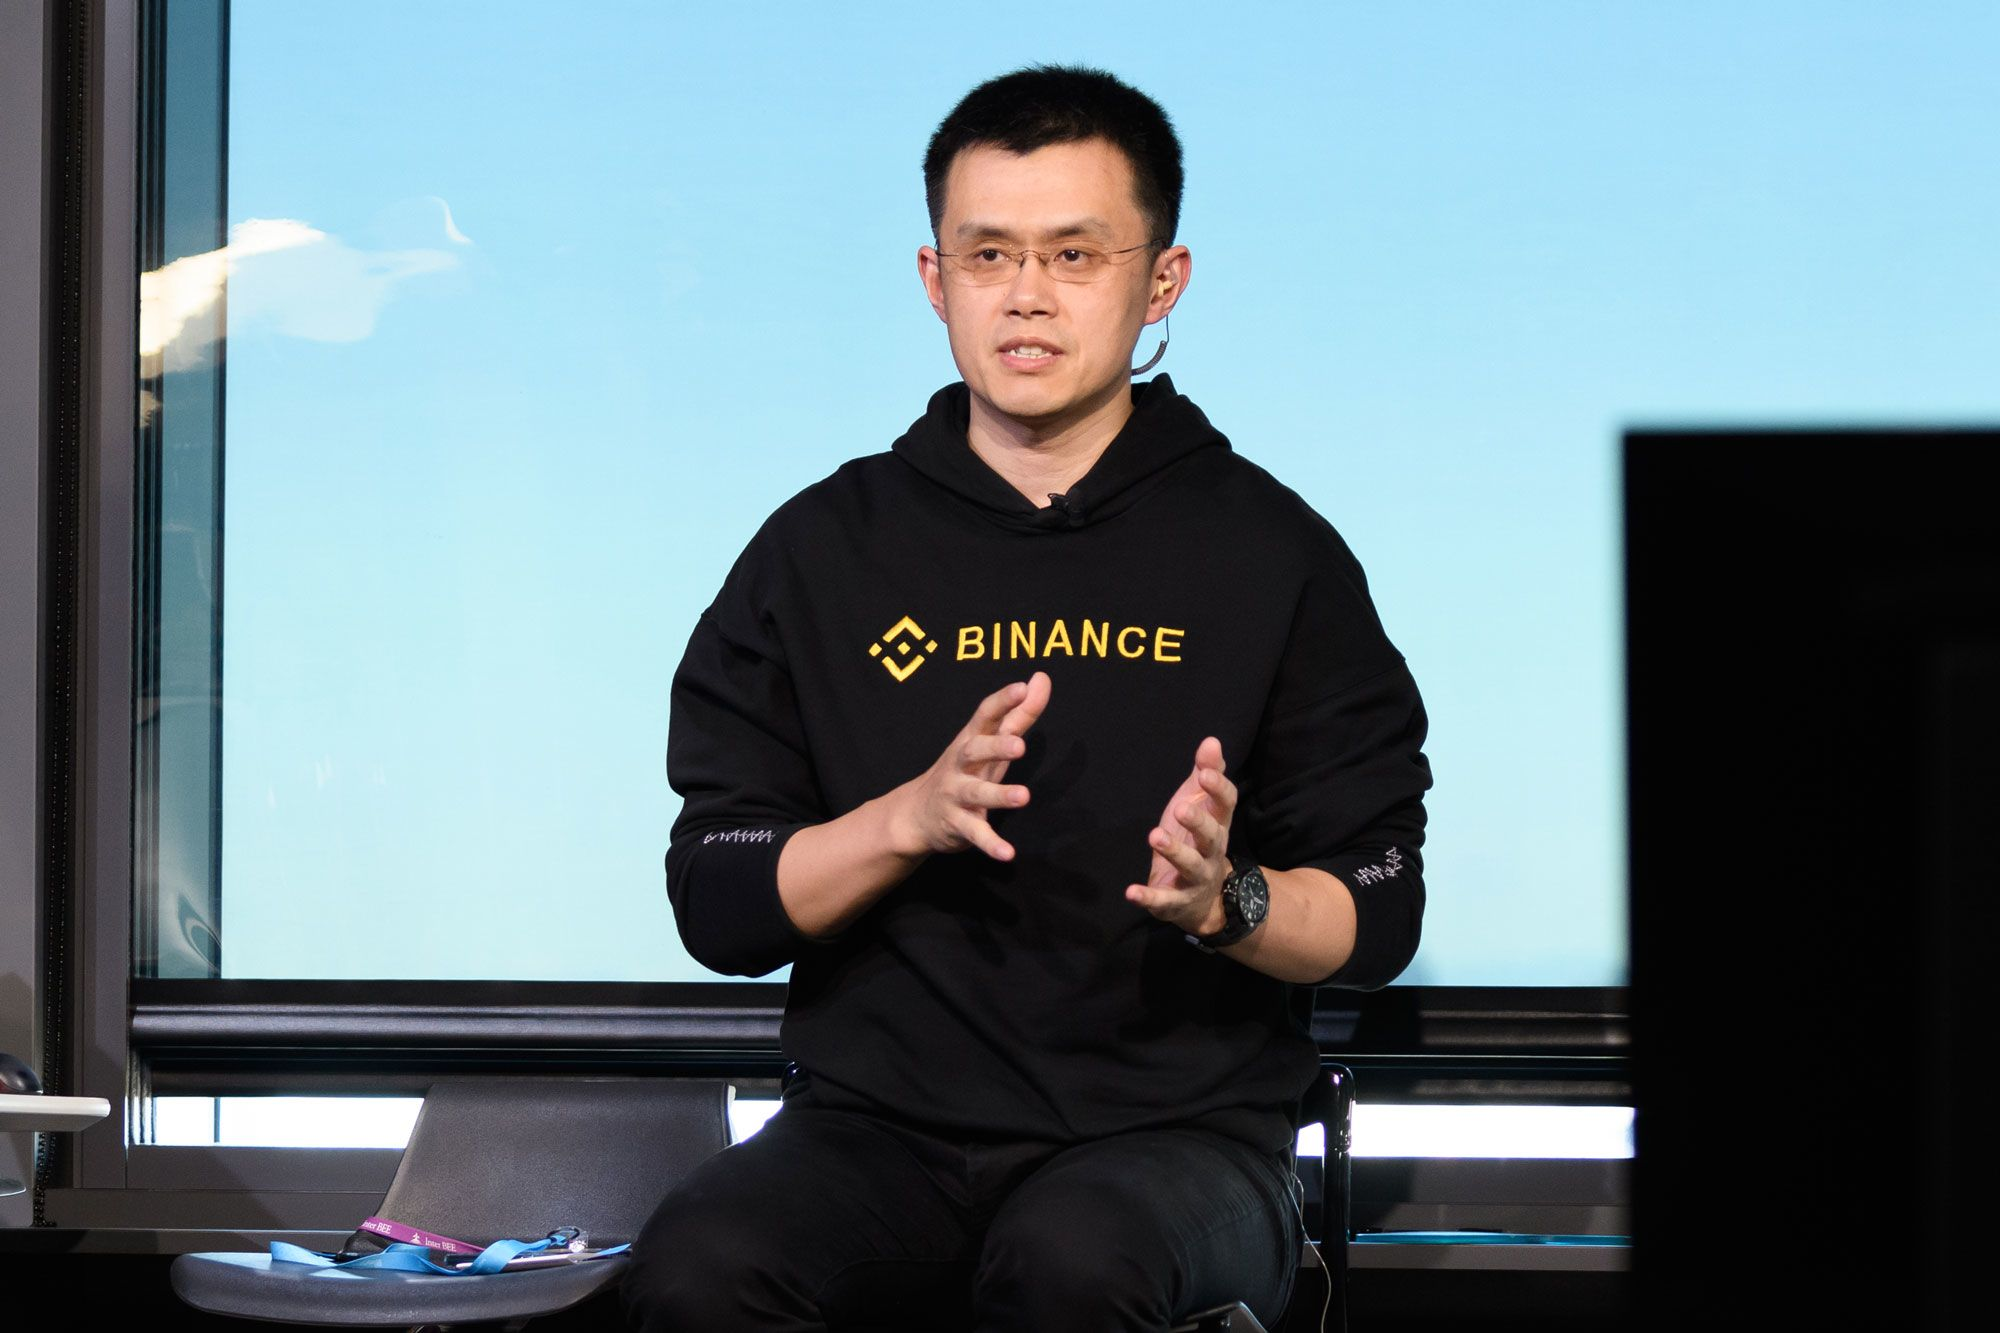 Binance ceo Zhao